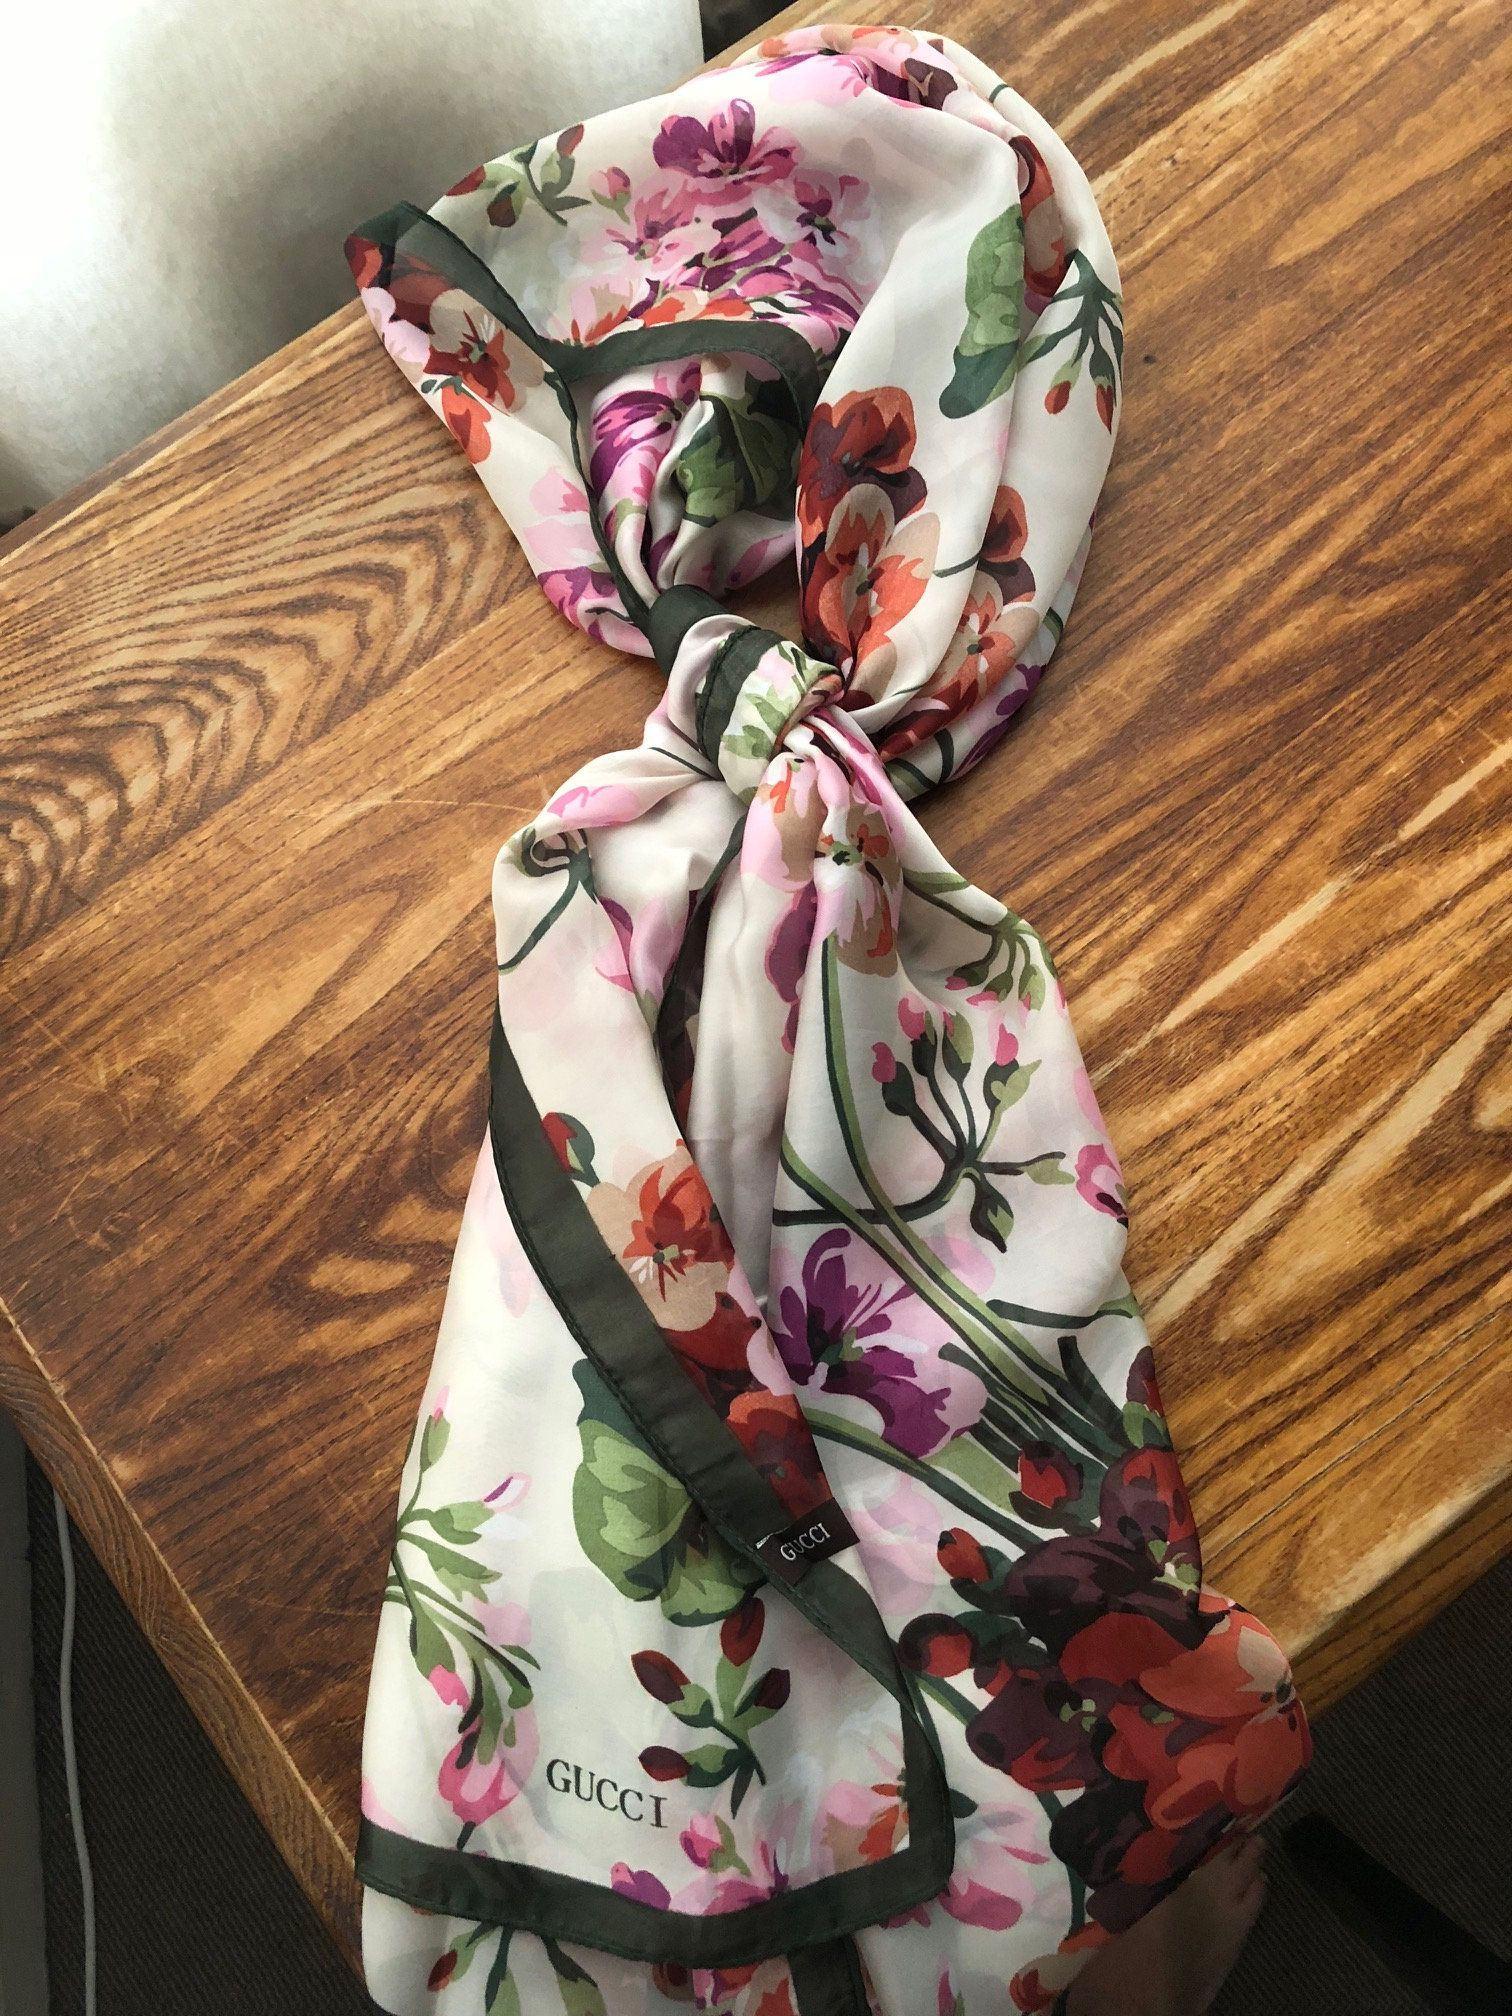 1042b3d06 Gucci 'Bloom' Silk scarf. -Brand new, never worn -100% Silk, very soft  -Made in Italy -Dry clean only Shipping via Royal Mail First Class Signed  For.